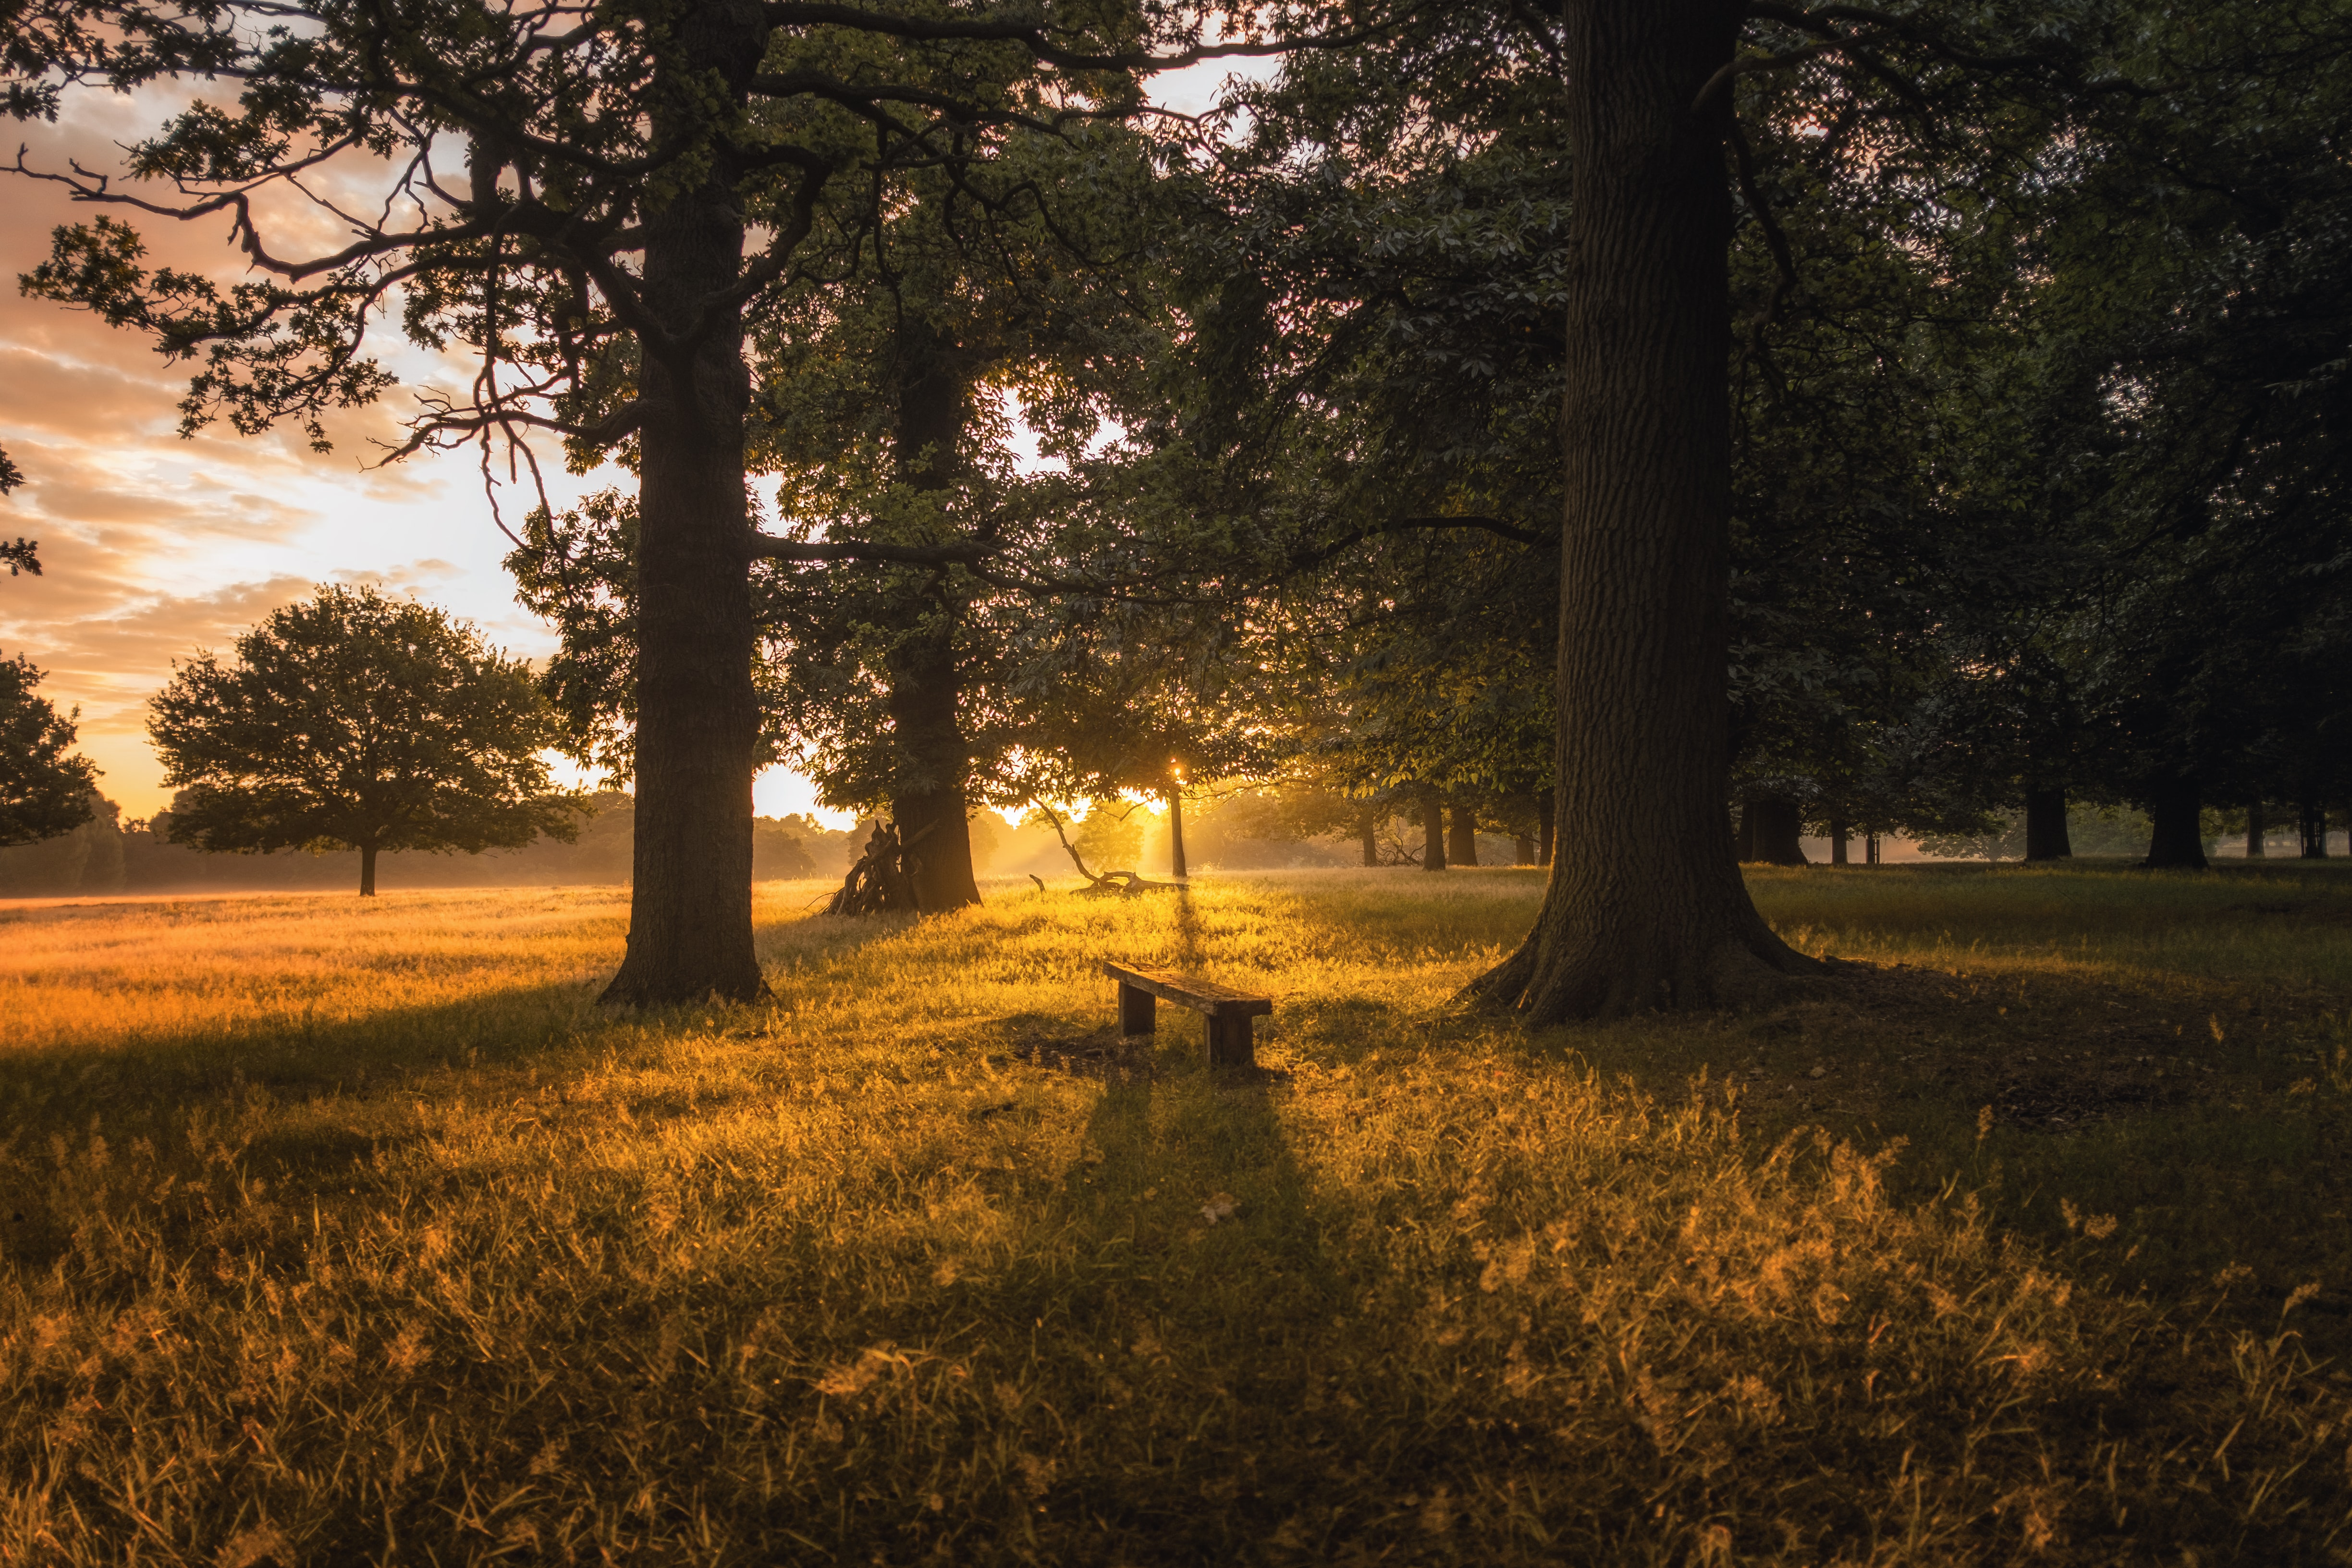 brown bench between two trees during sunset